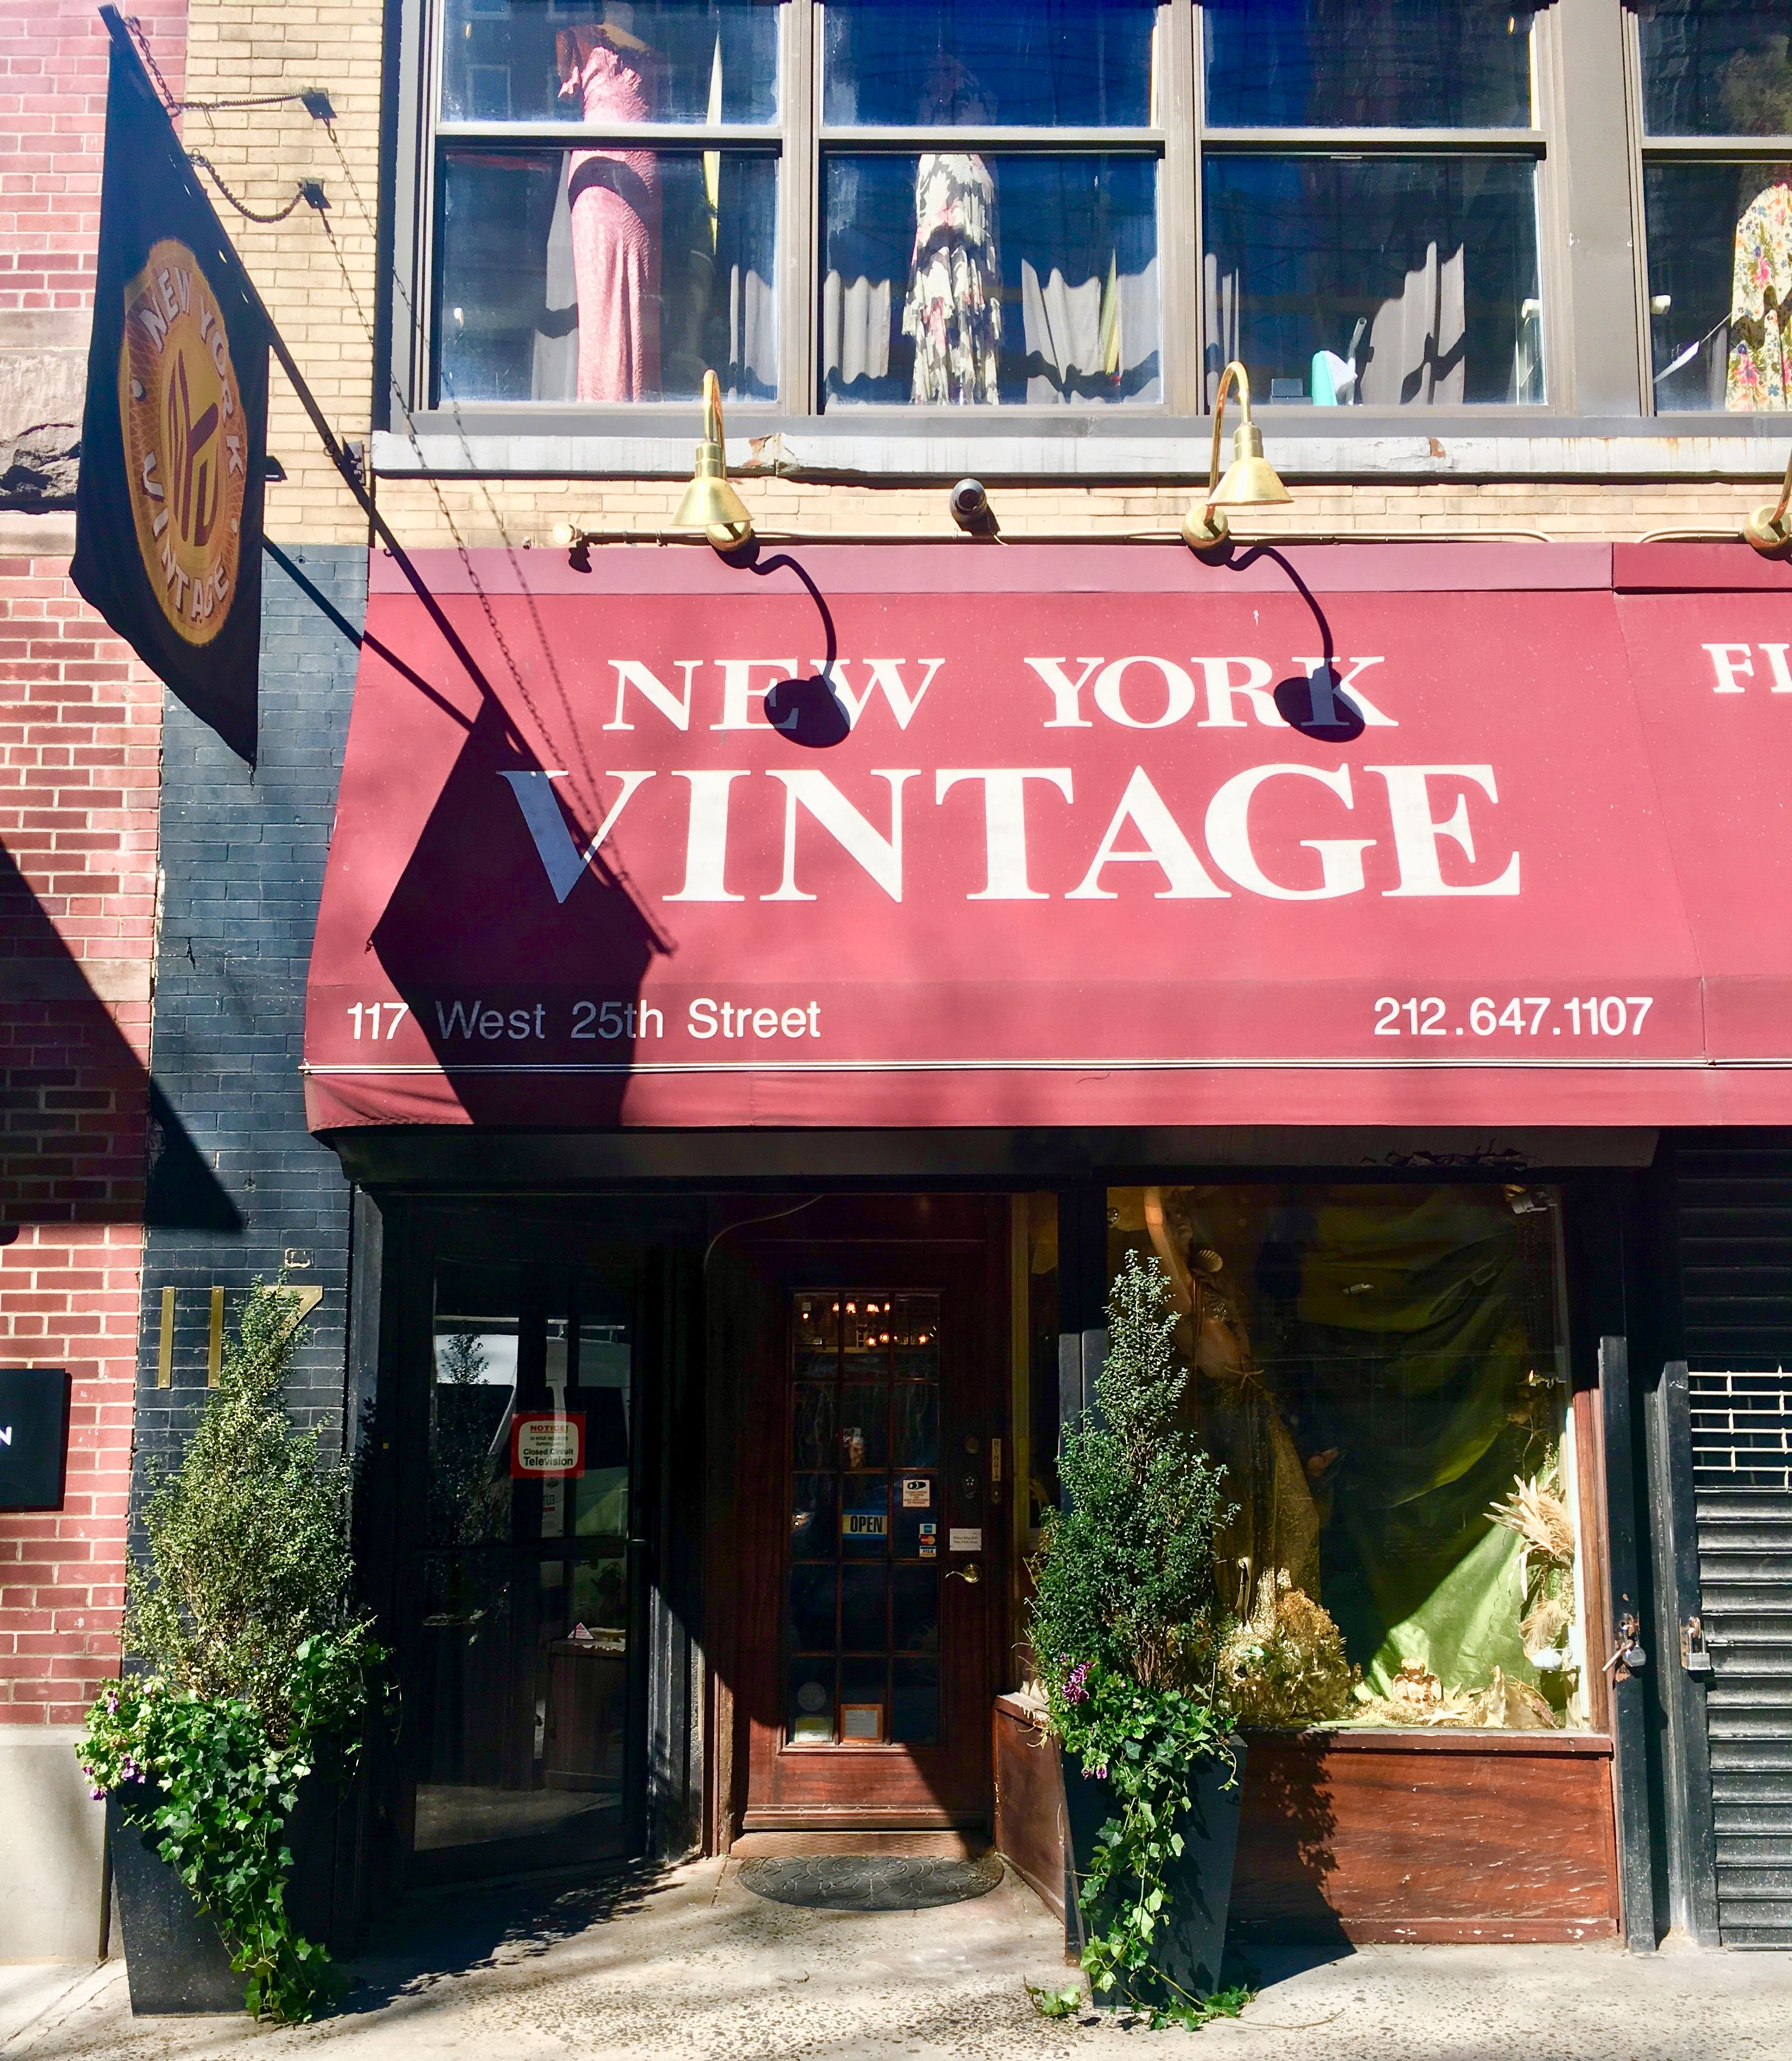 74563eda3b Local Artisan of the day is New York Vintage. New York Vintage is one of